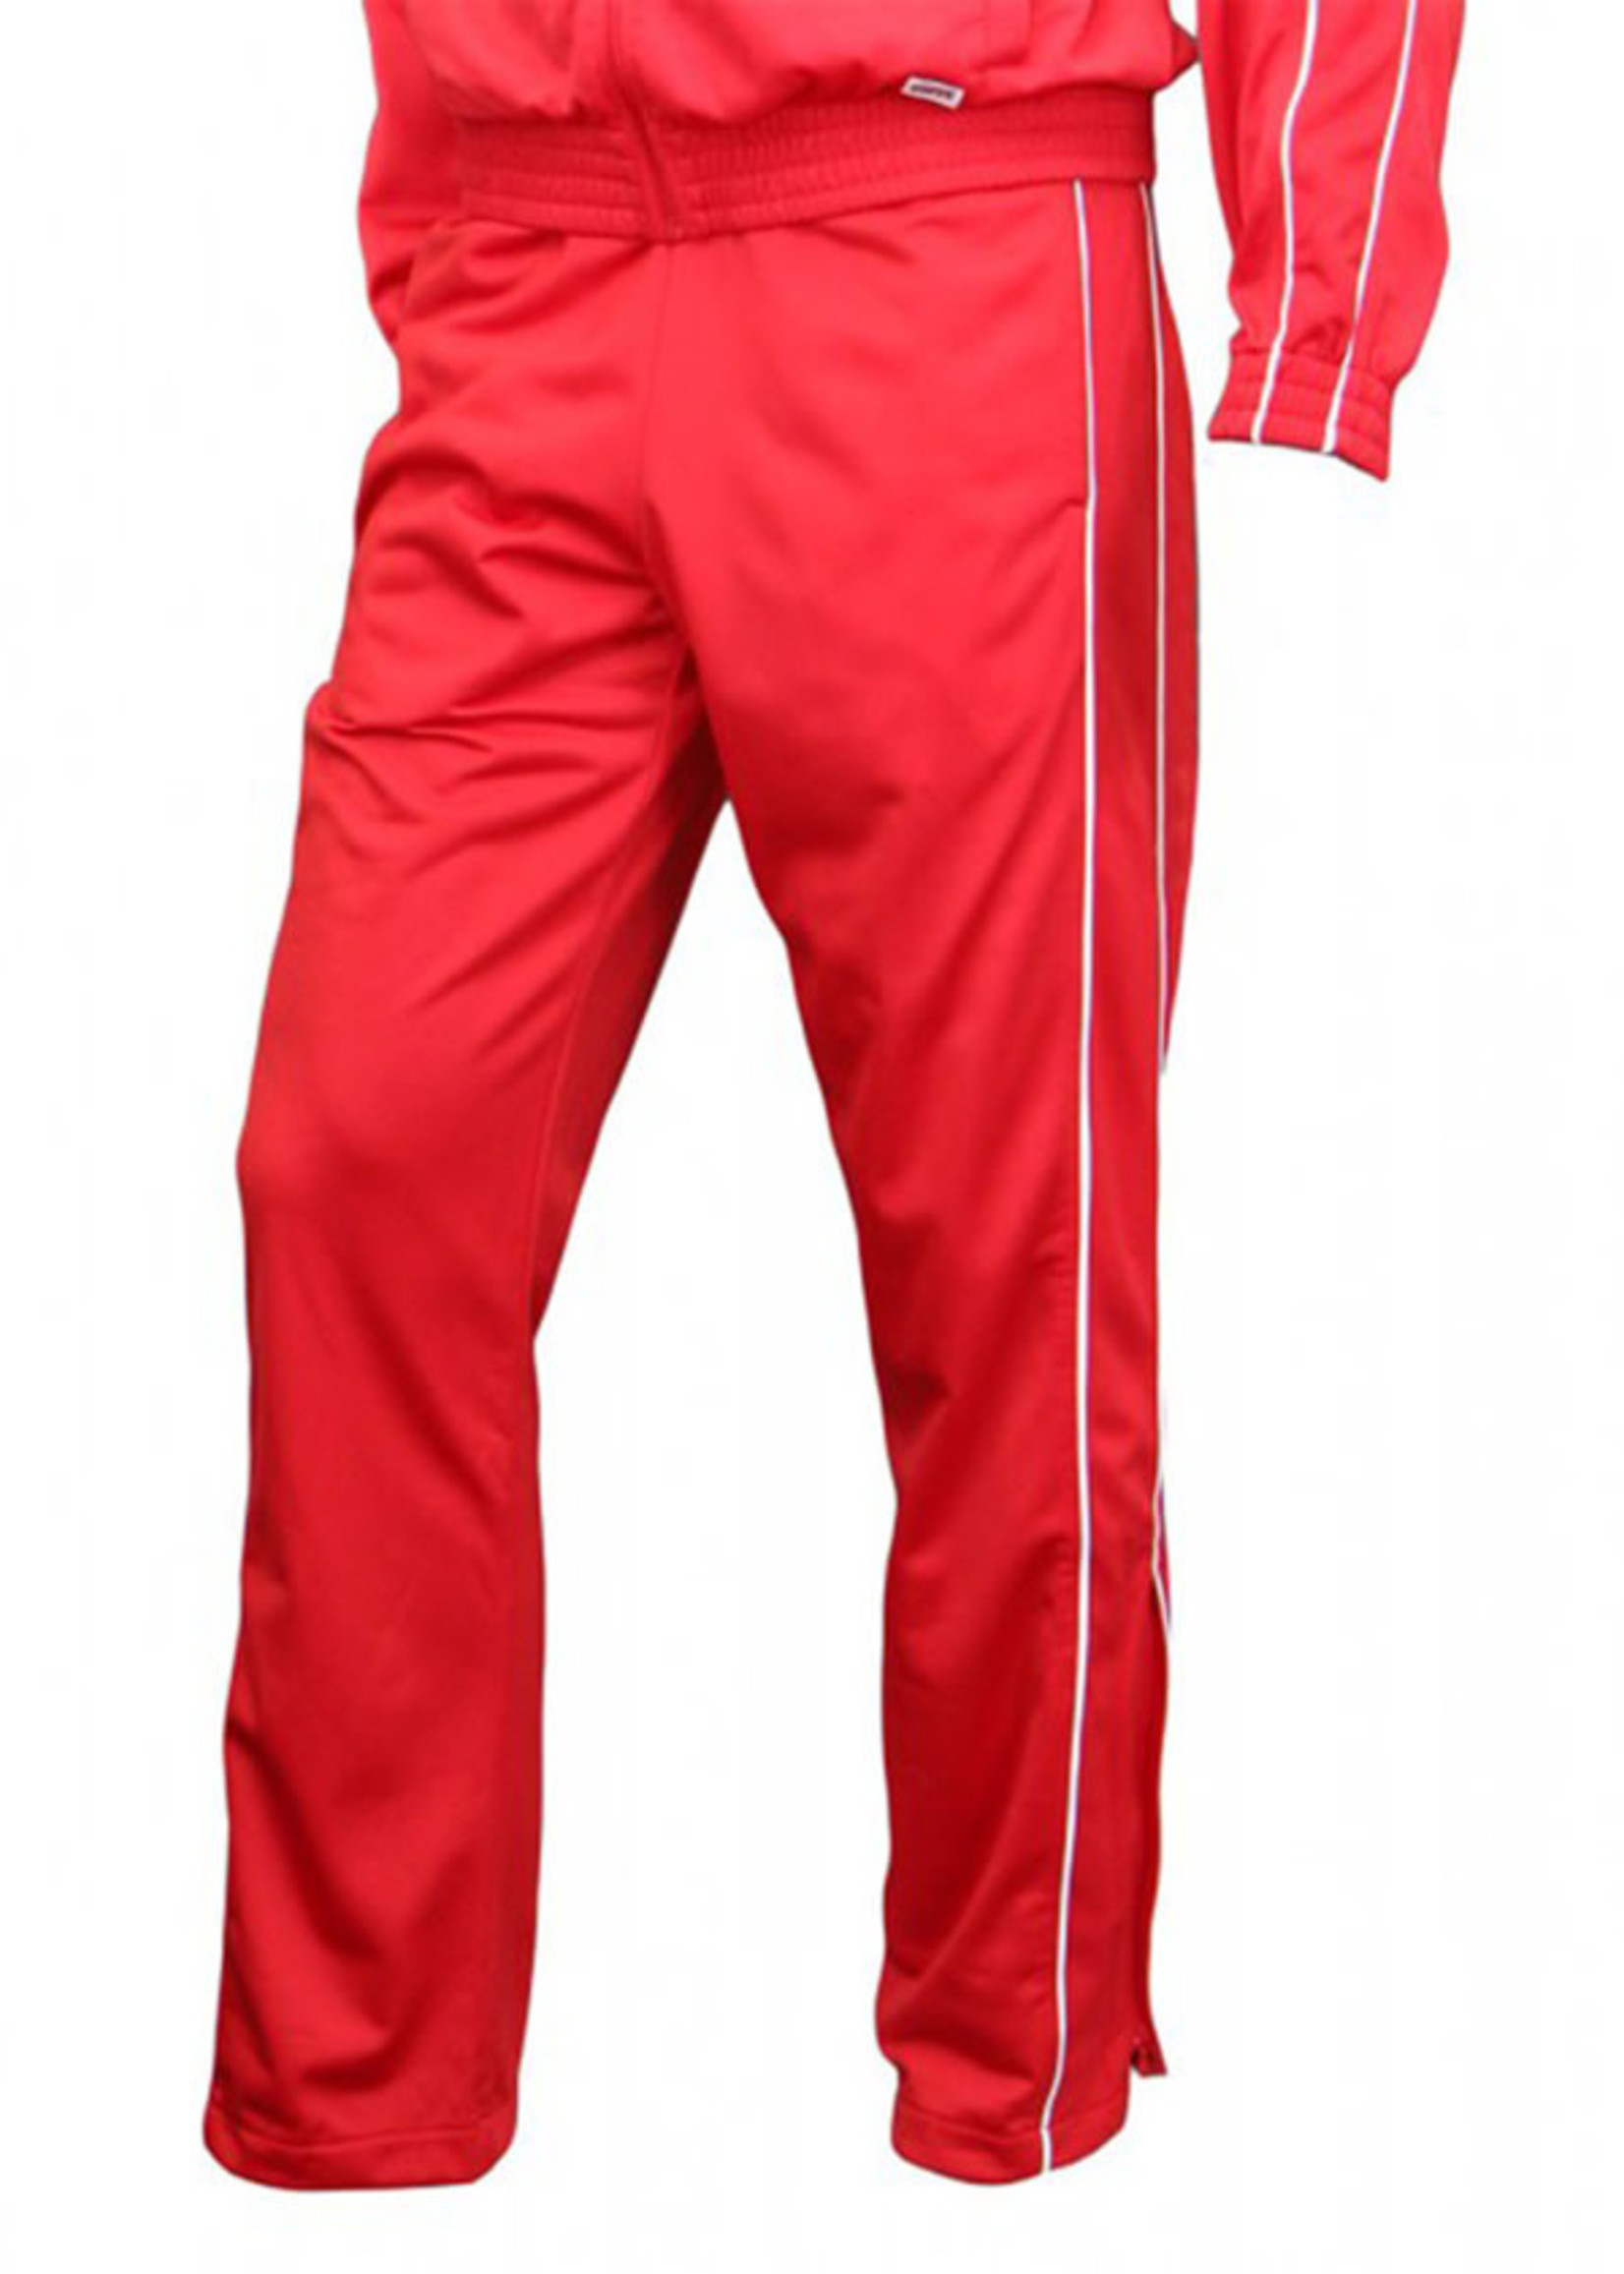 Red Tricot Warm Up Pants